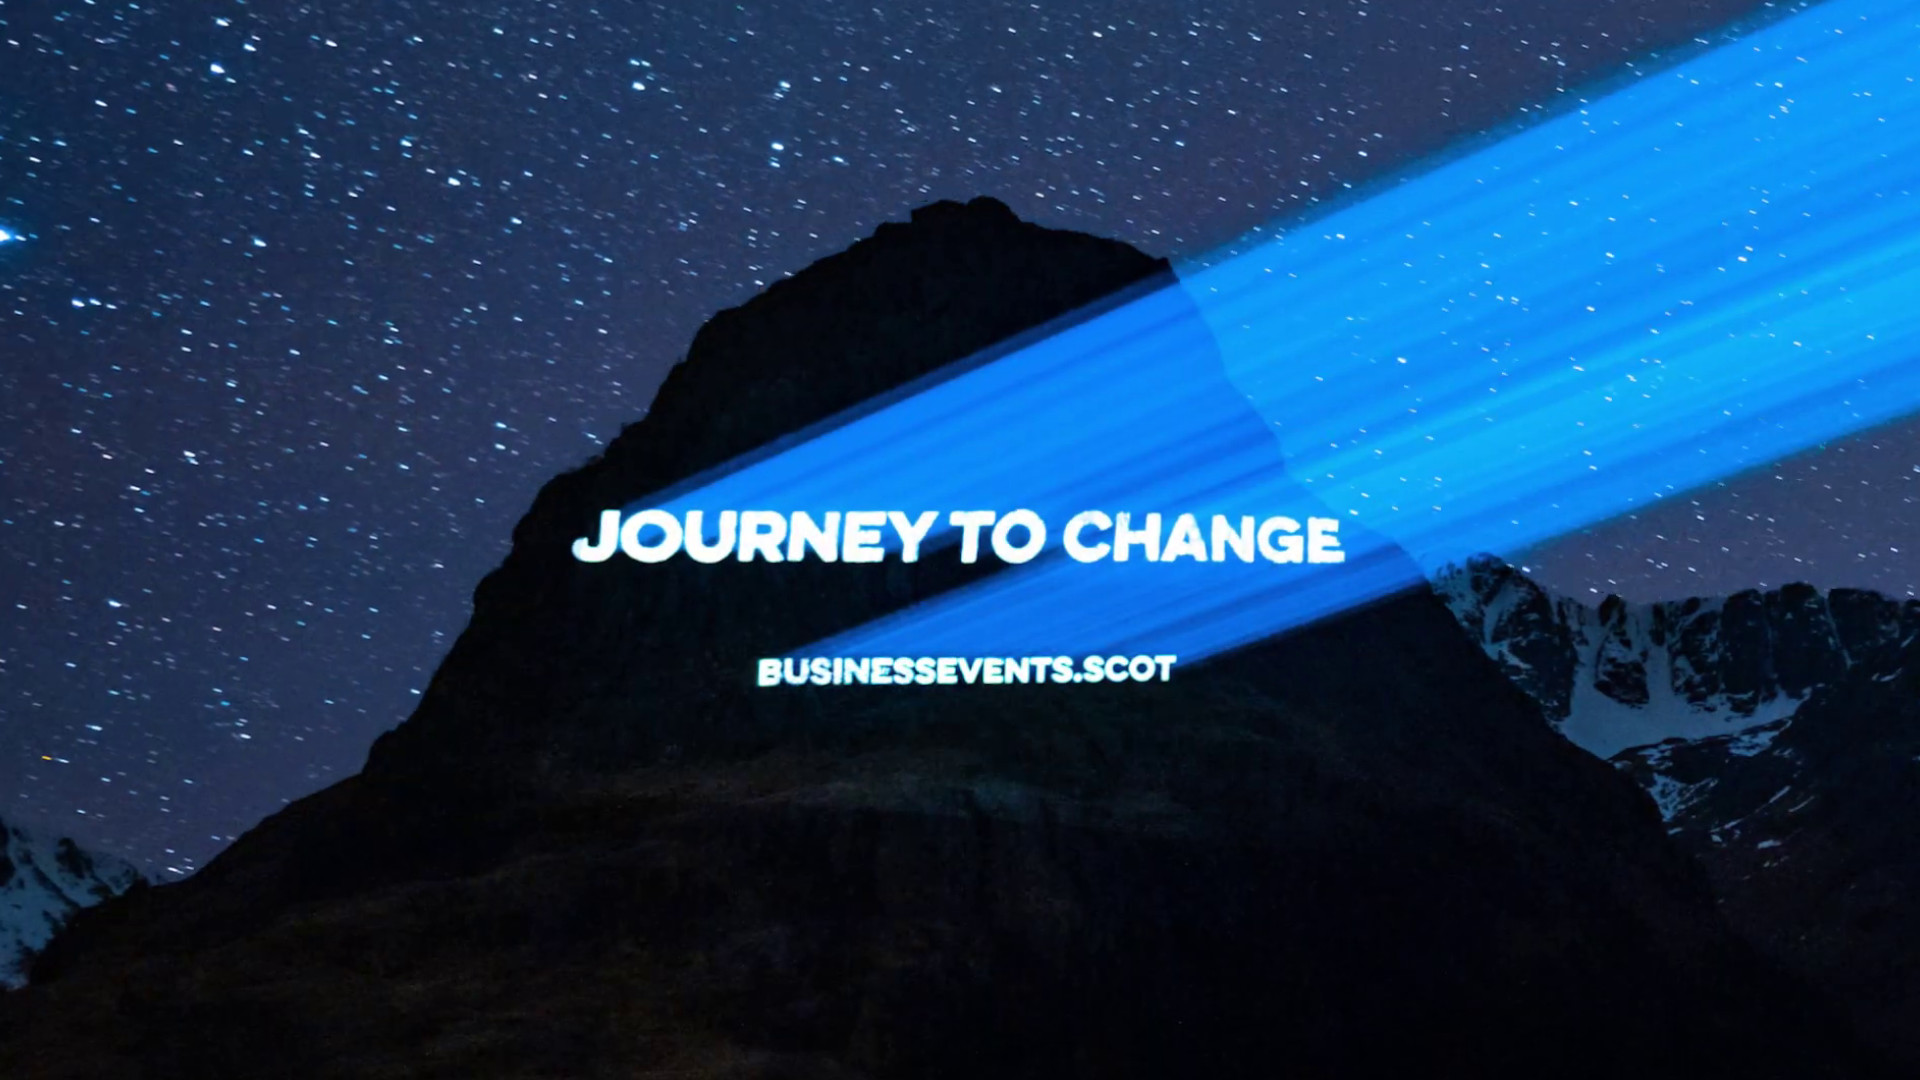 Journey to Change Campaign, Scotland